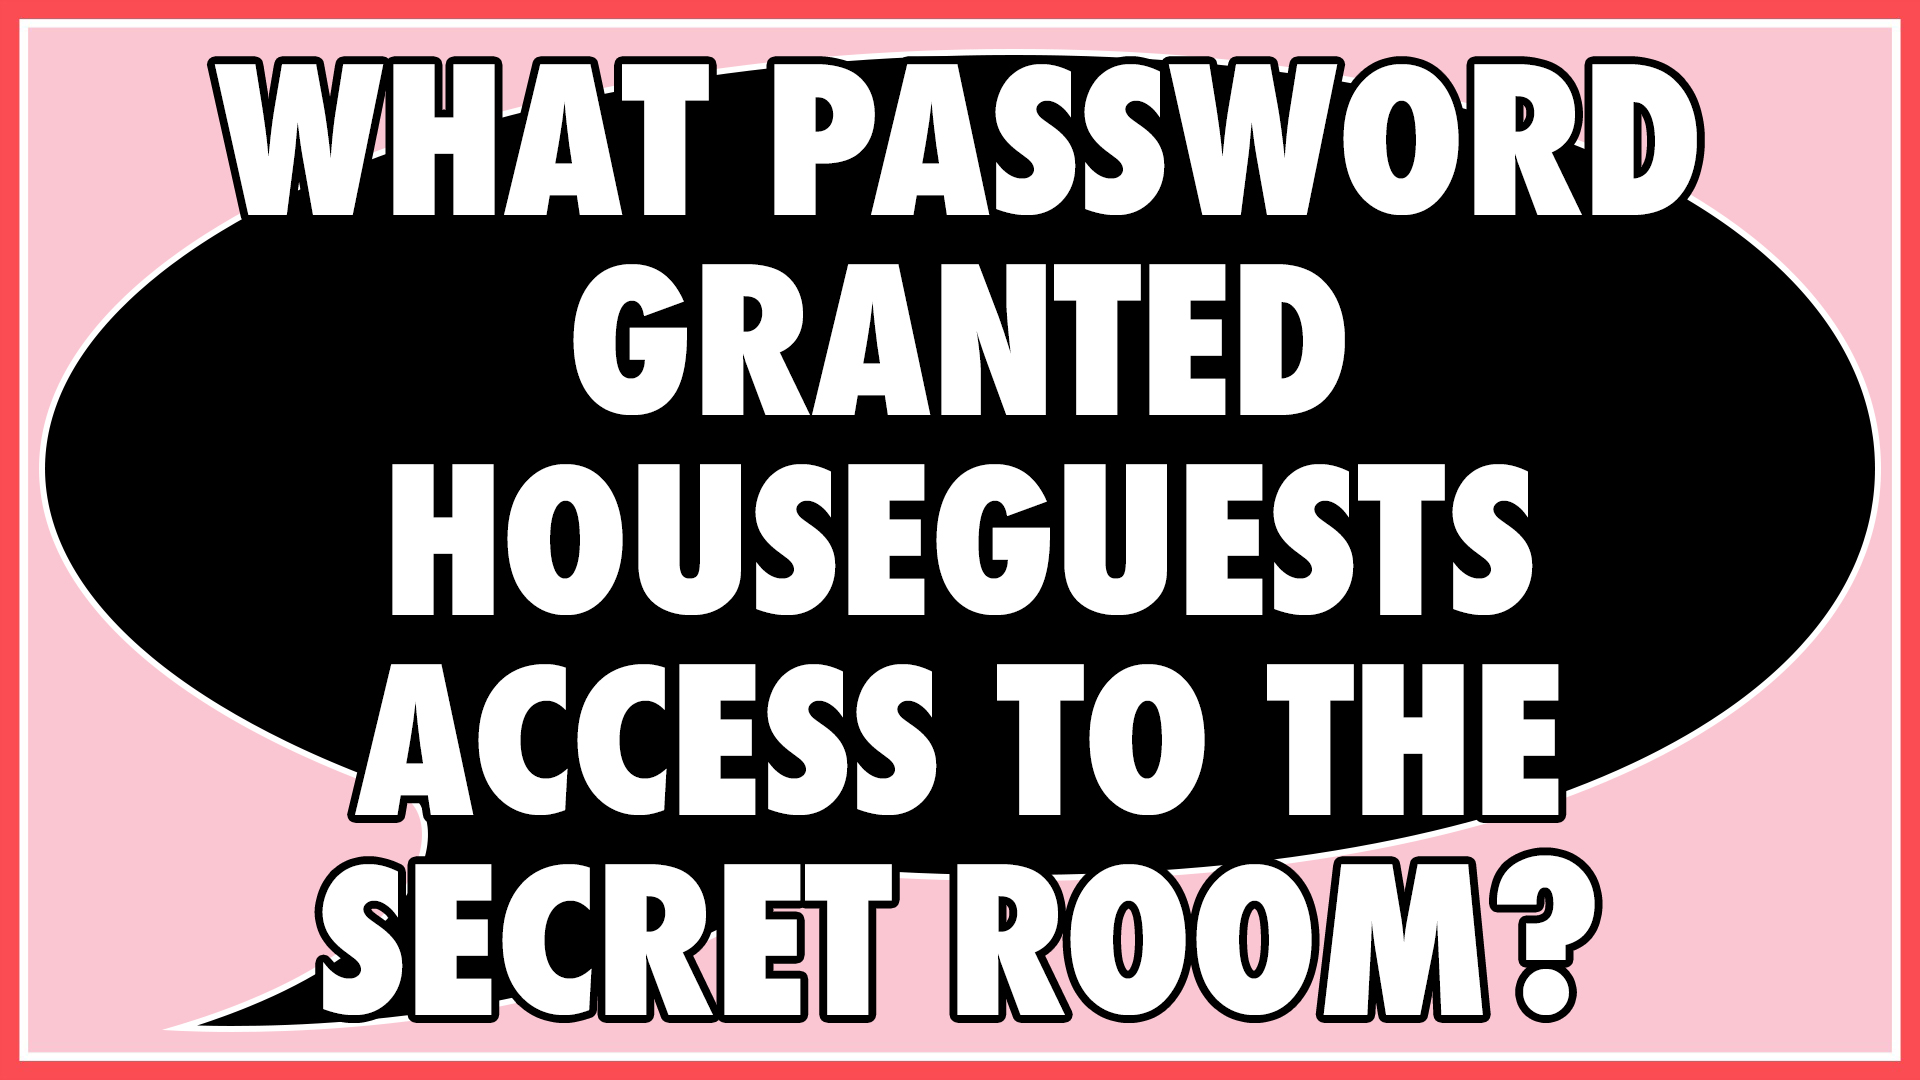 What secret password granted Houseguests access to the secret room?